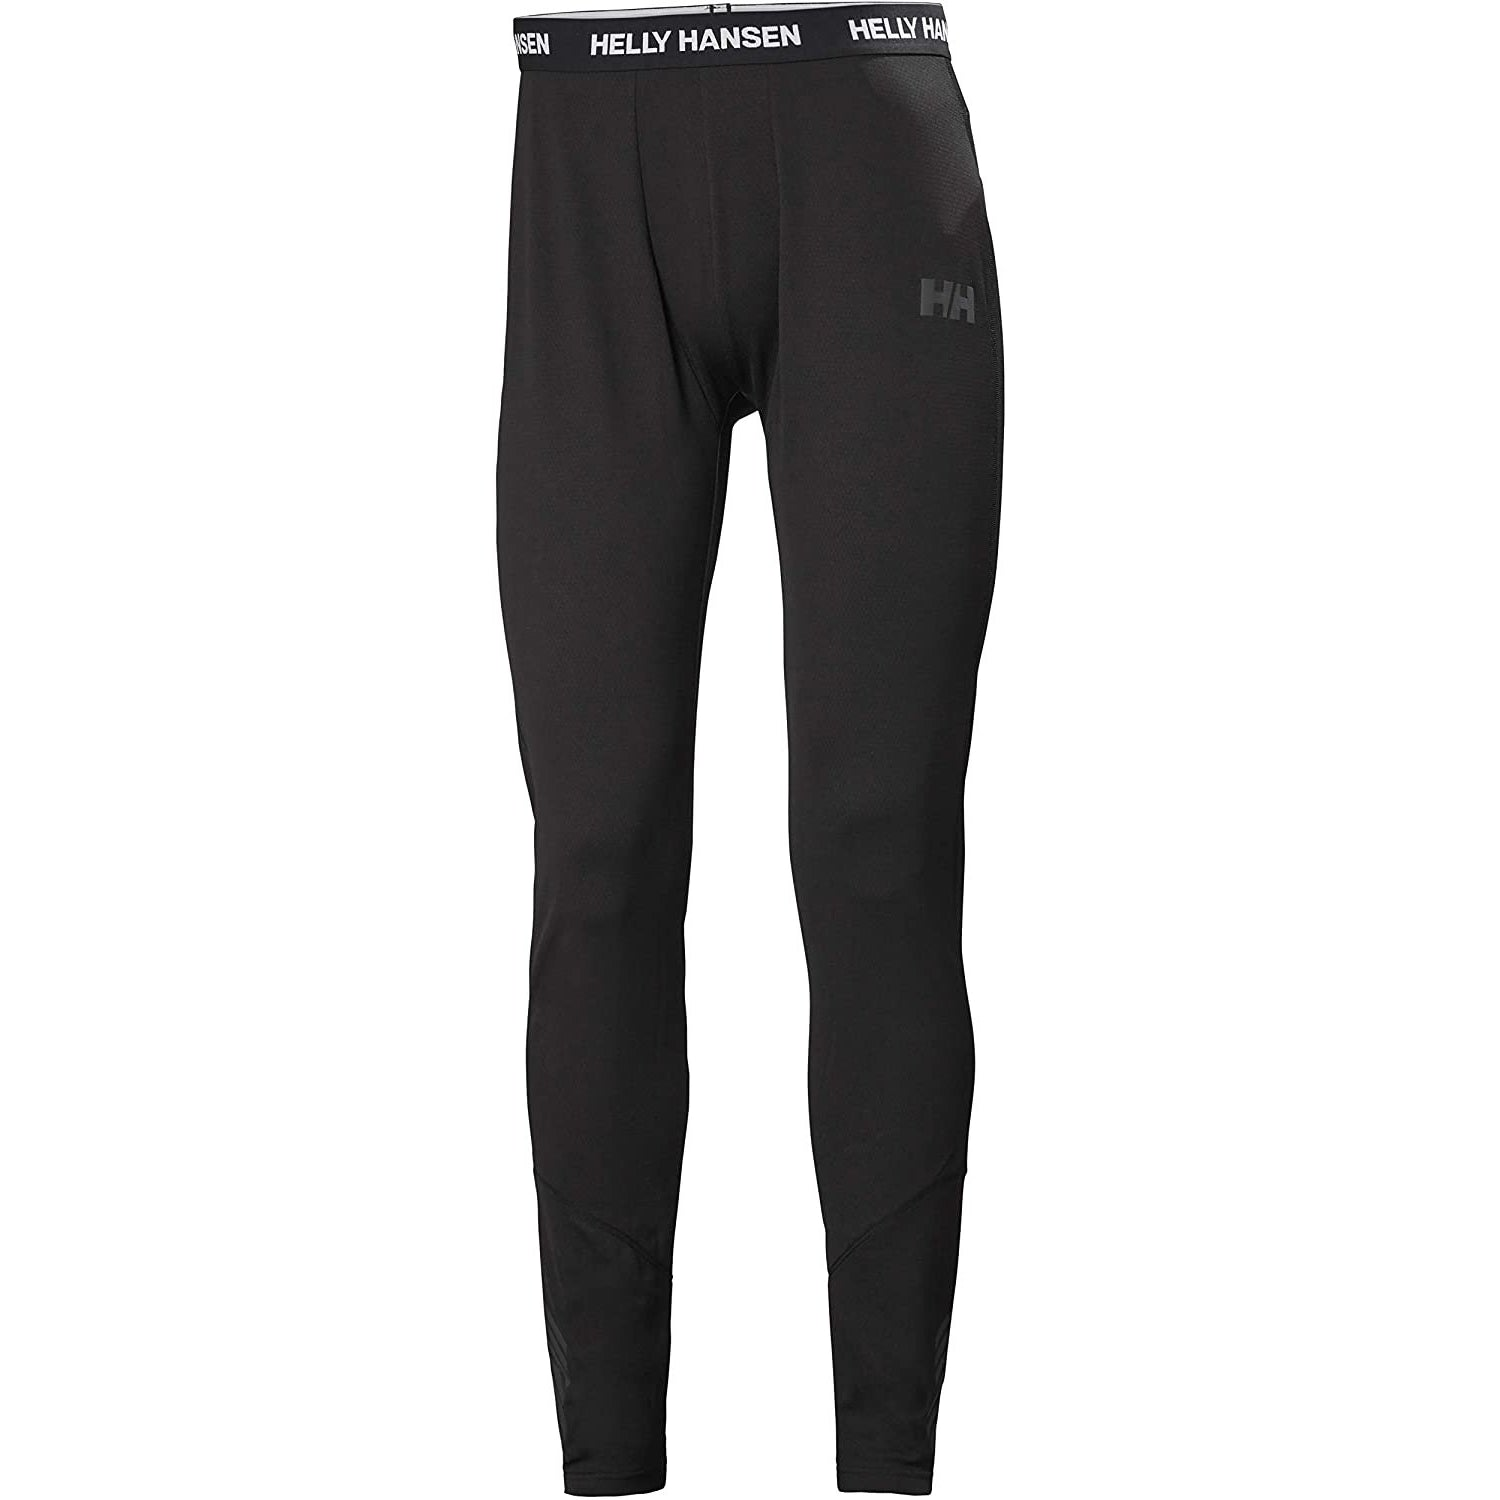 Helly Hansen 2021 Men's Lifa Active Pant